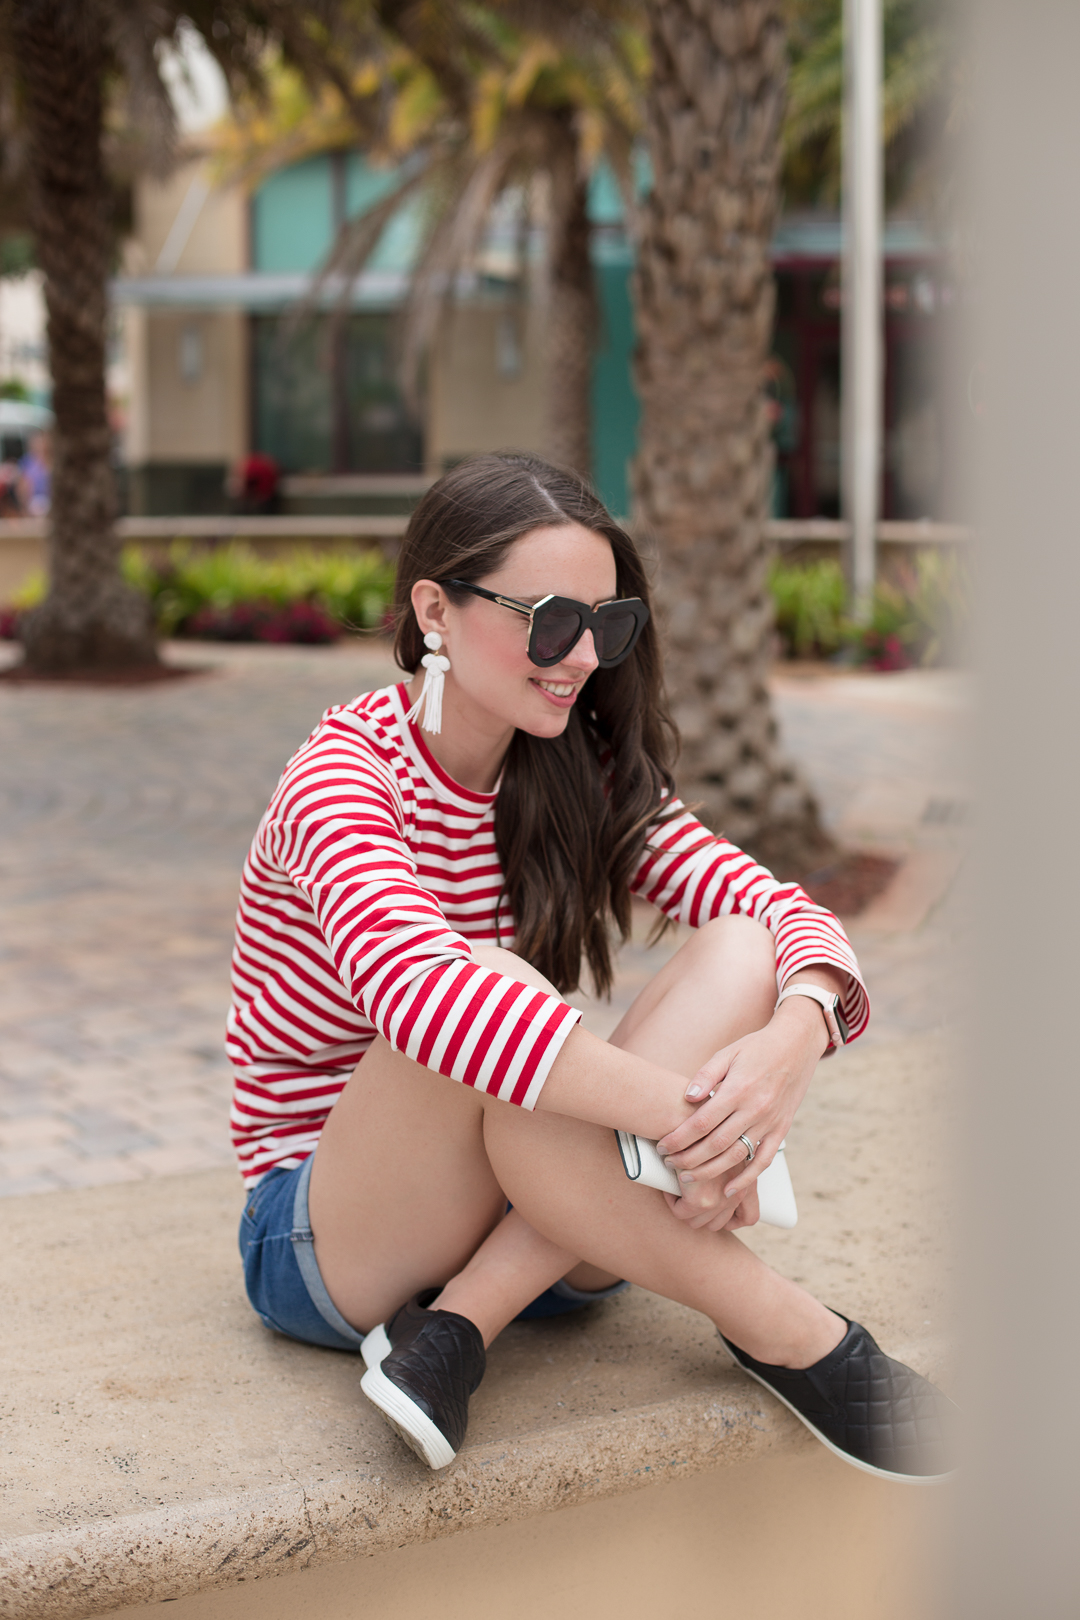 Soaking up the Palm Beach sun with ECCO